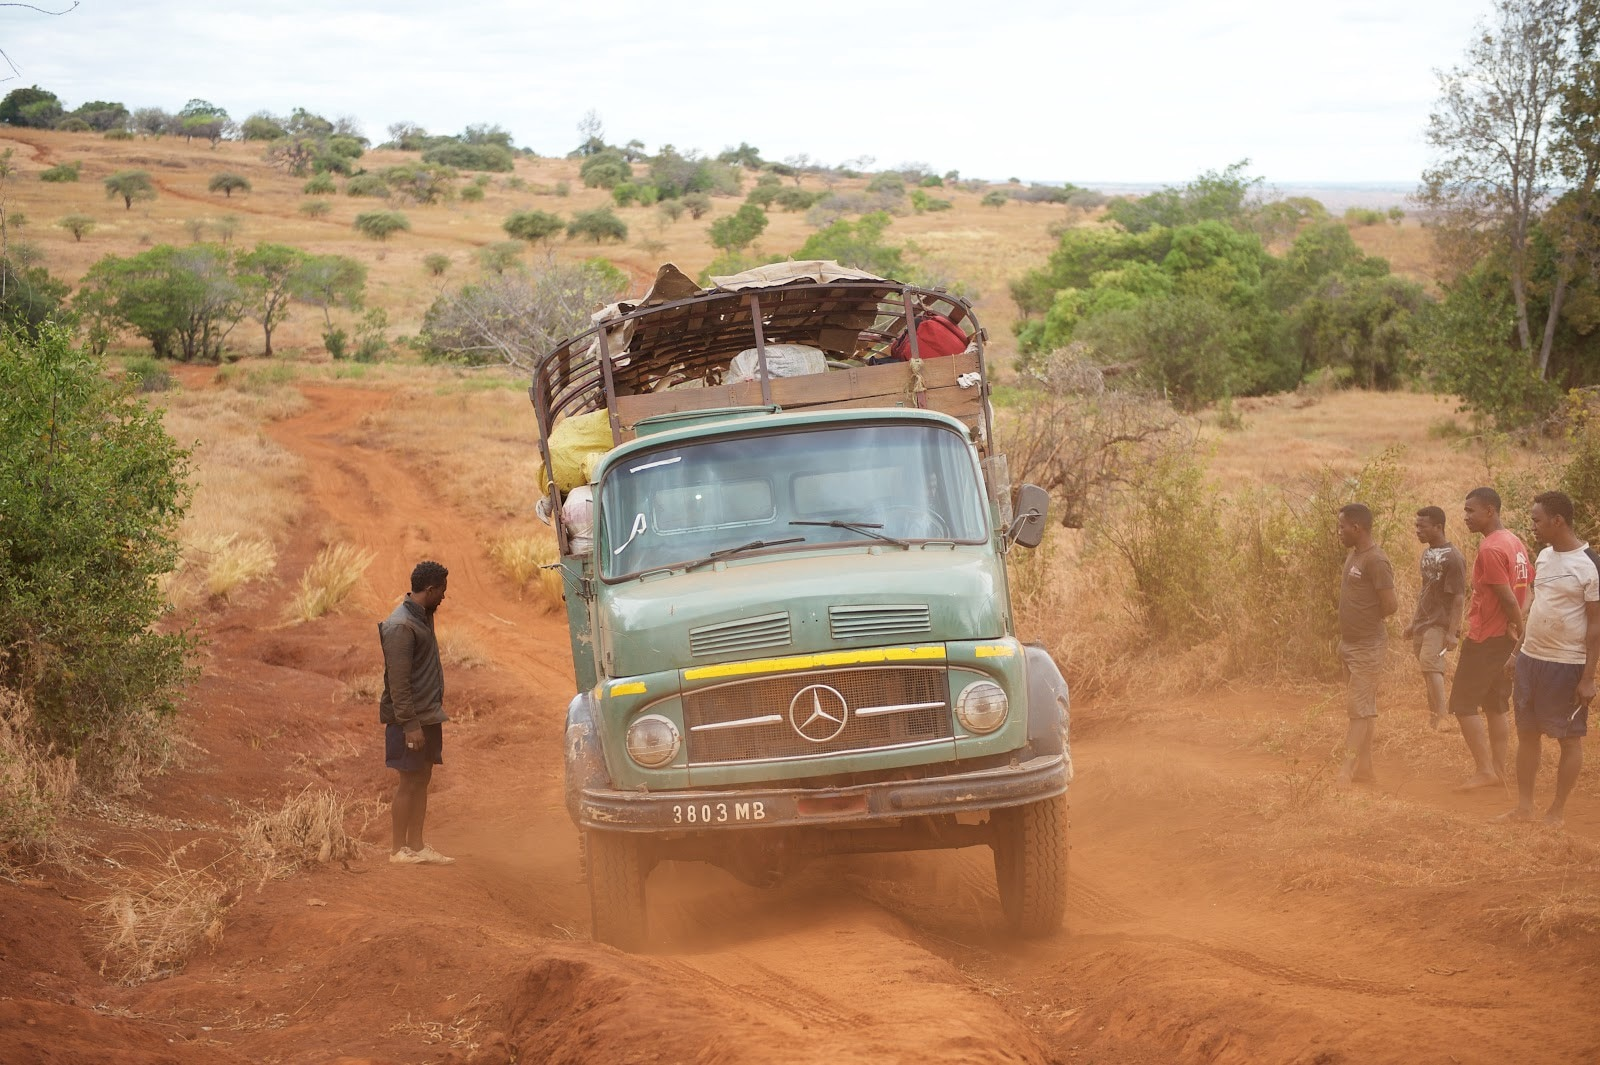 A truck carrying nets travels on an accessible road in Madagascar. (Lan Andrian, USAID Global Health Supply Chain Program—Procurement and Supply Management)